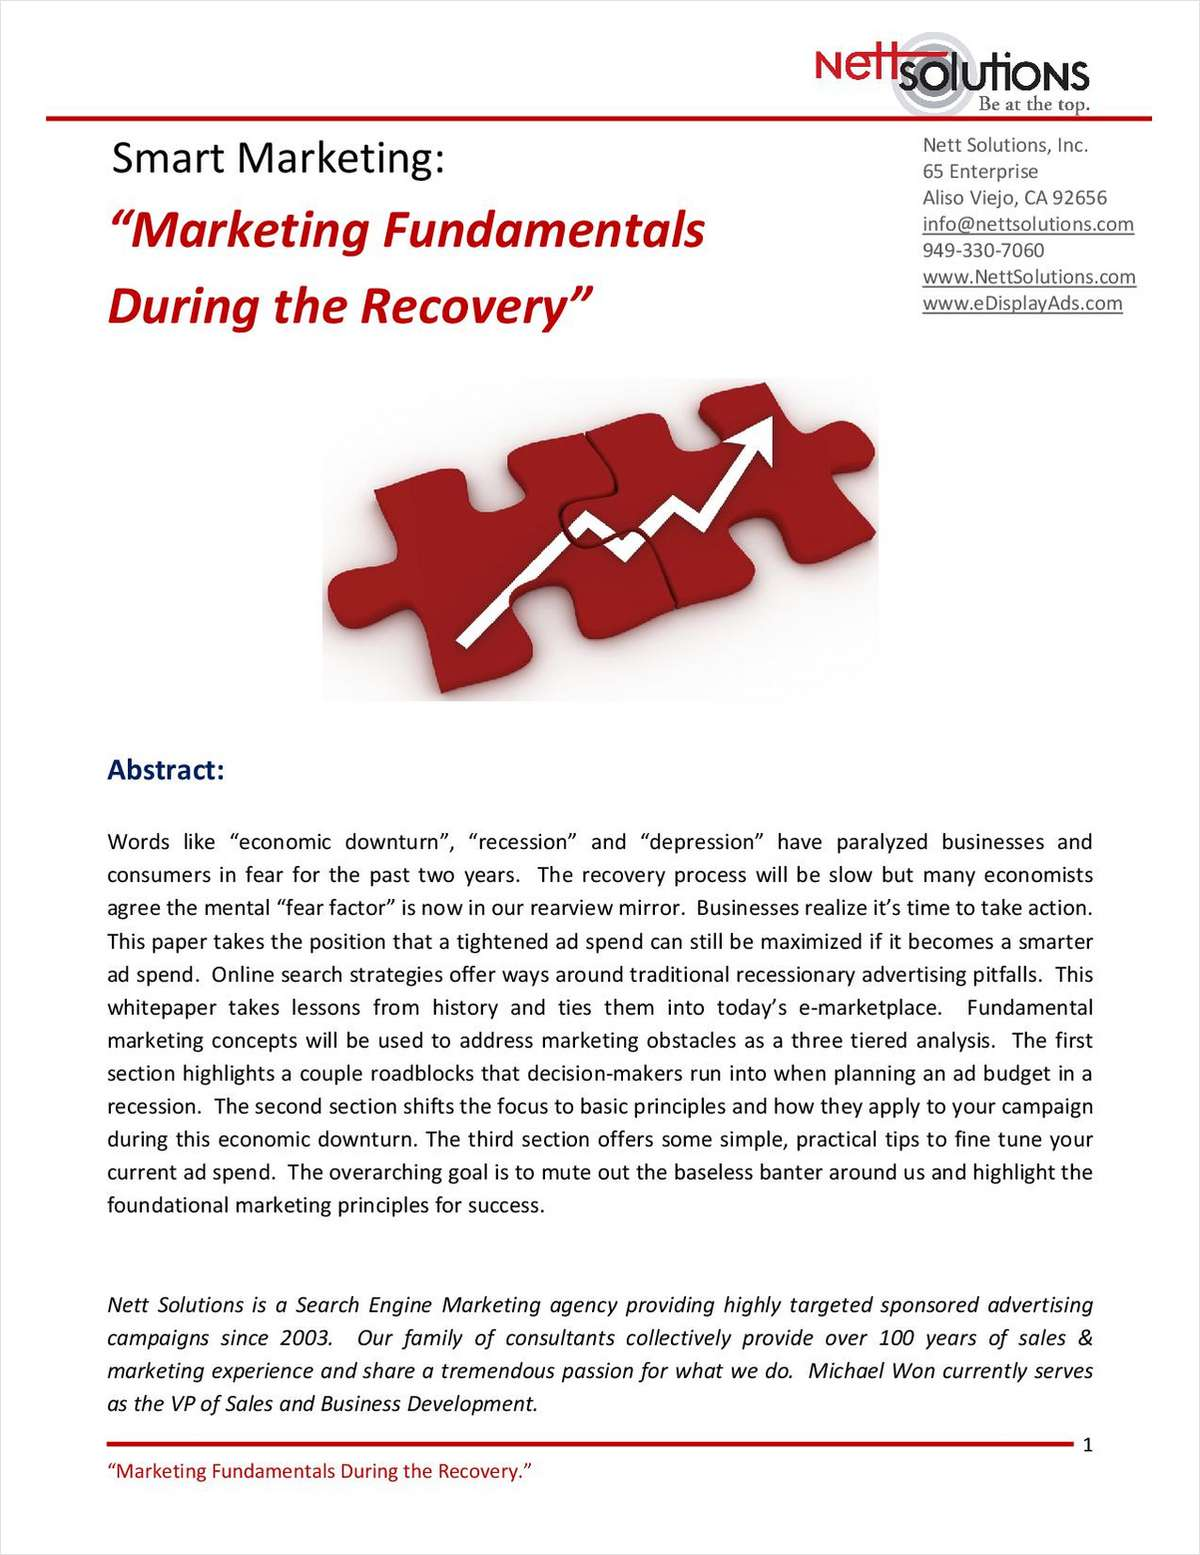 Smart Marketing: Marketing Fundamentals During the Recovery